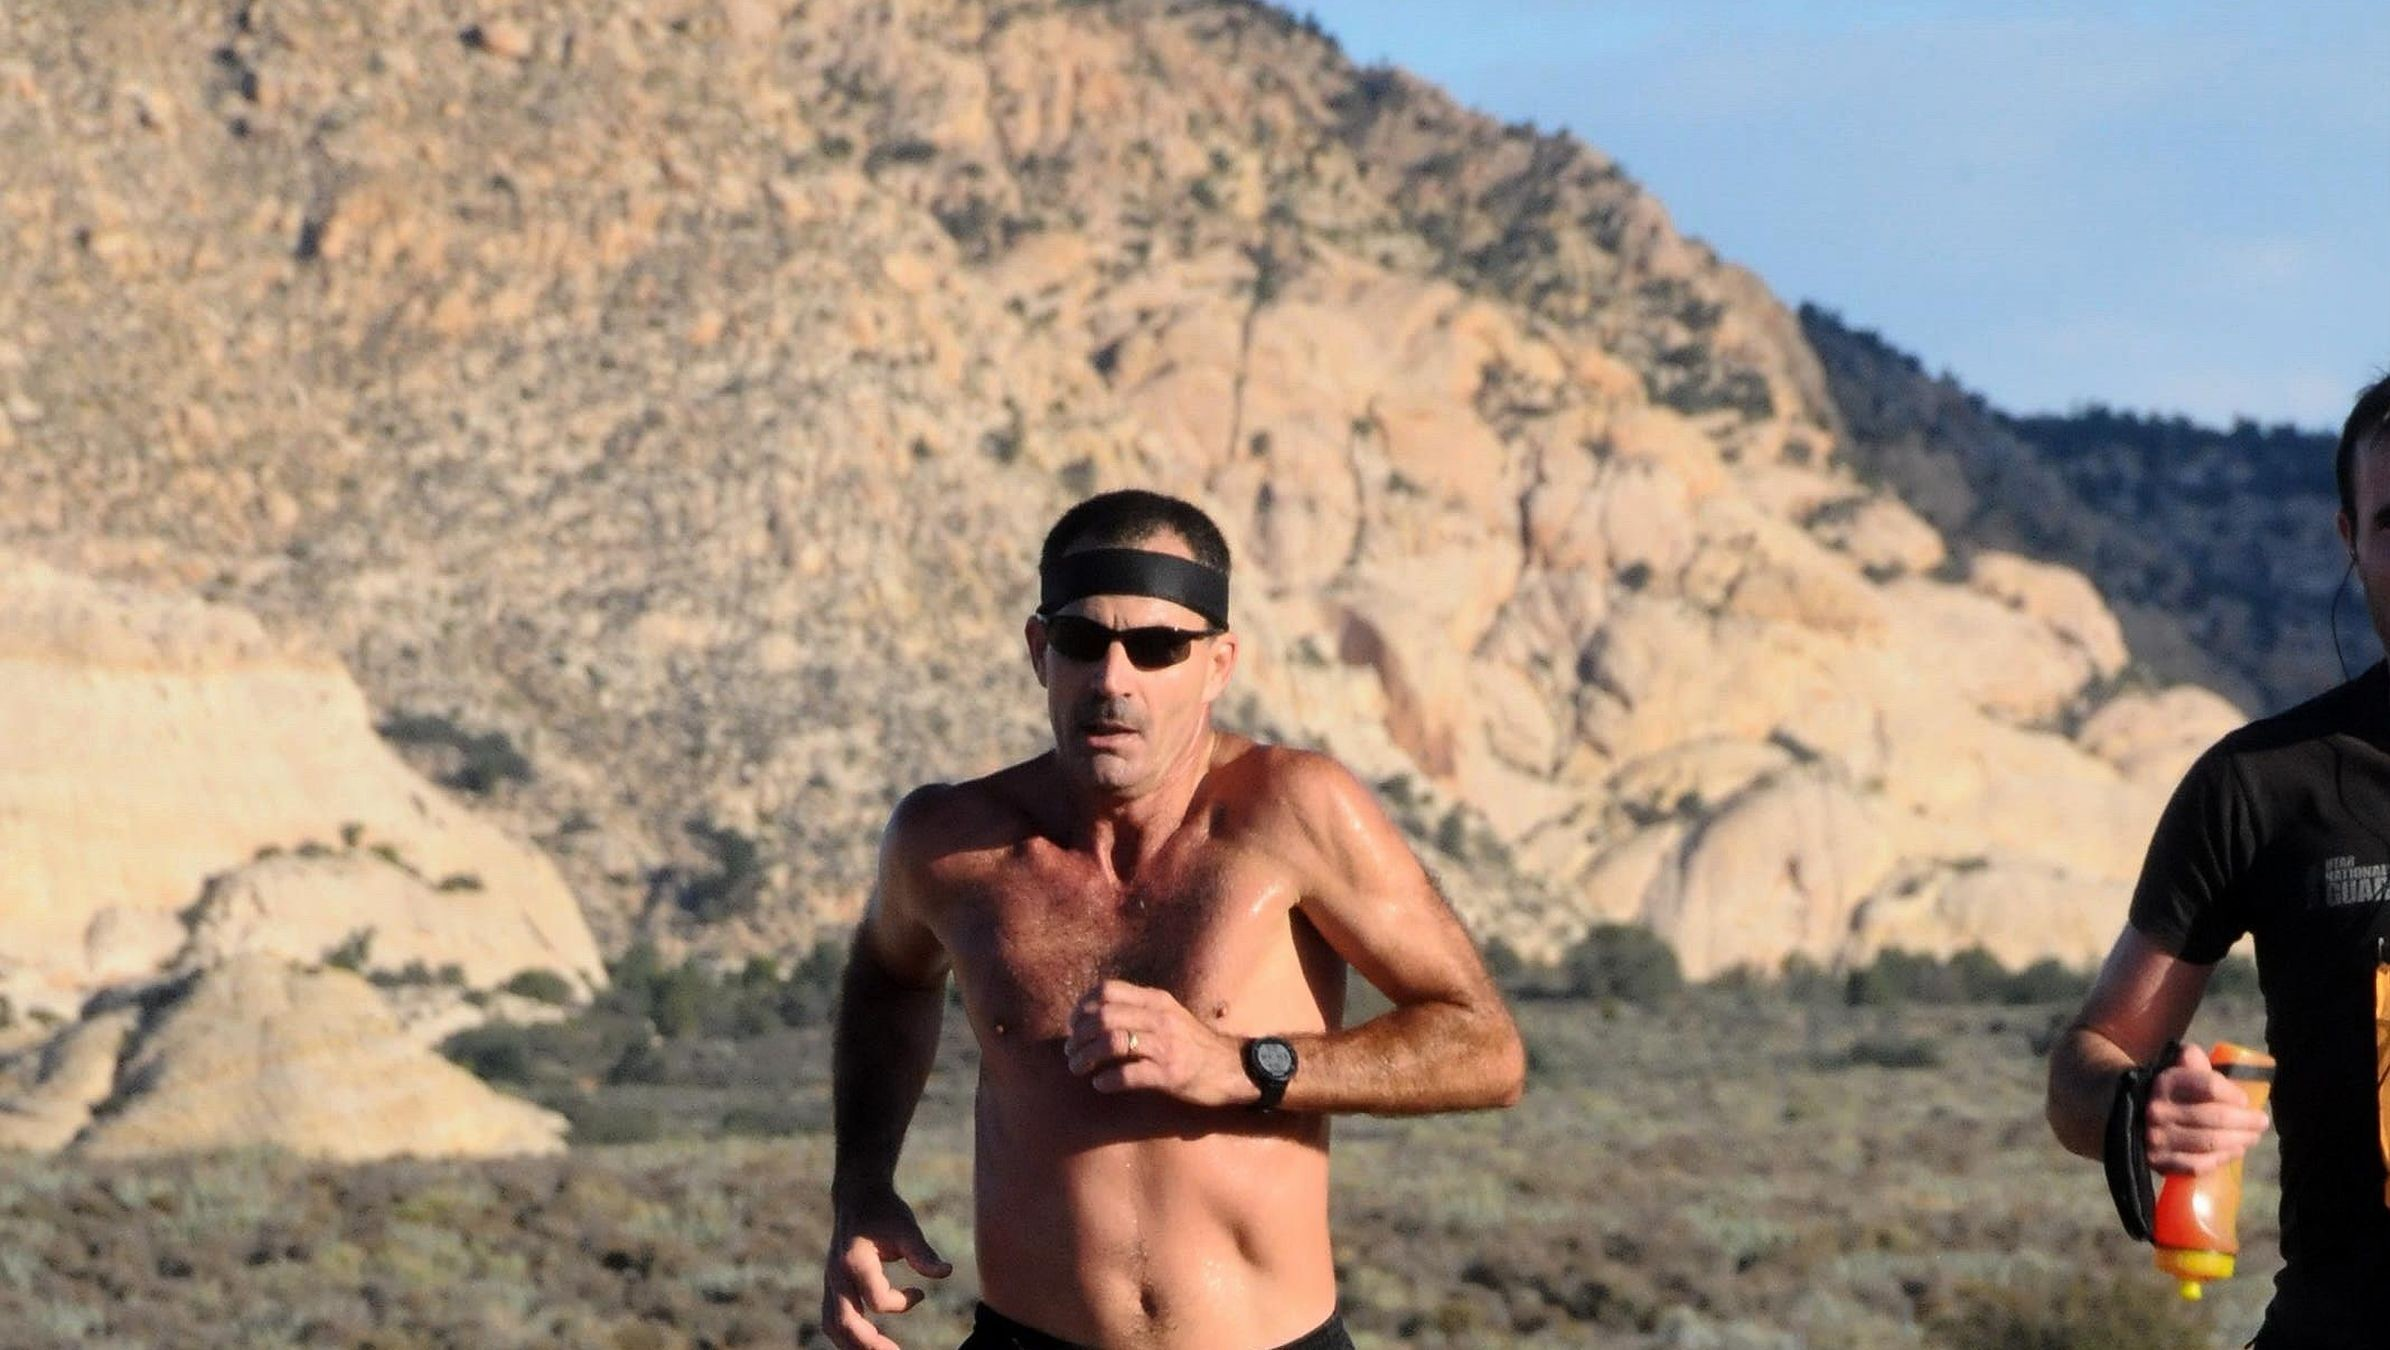 Stuart Kolb, prepares for his 100th marathon in boston this monday